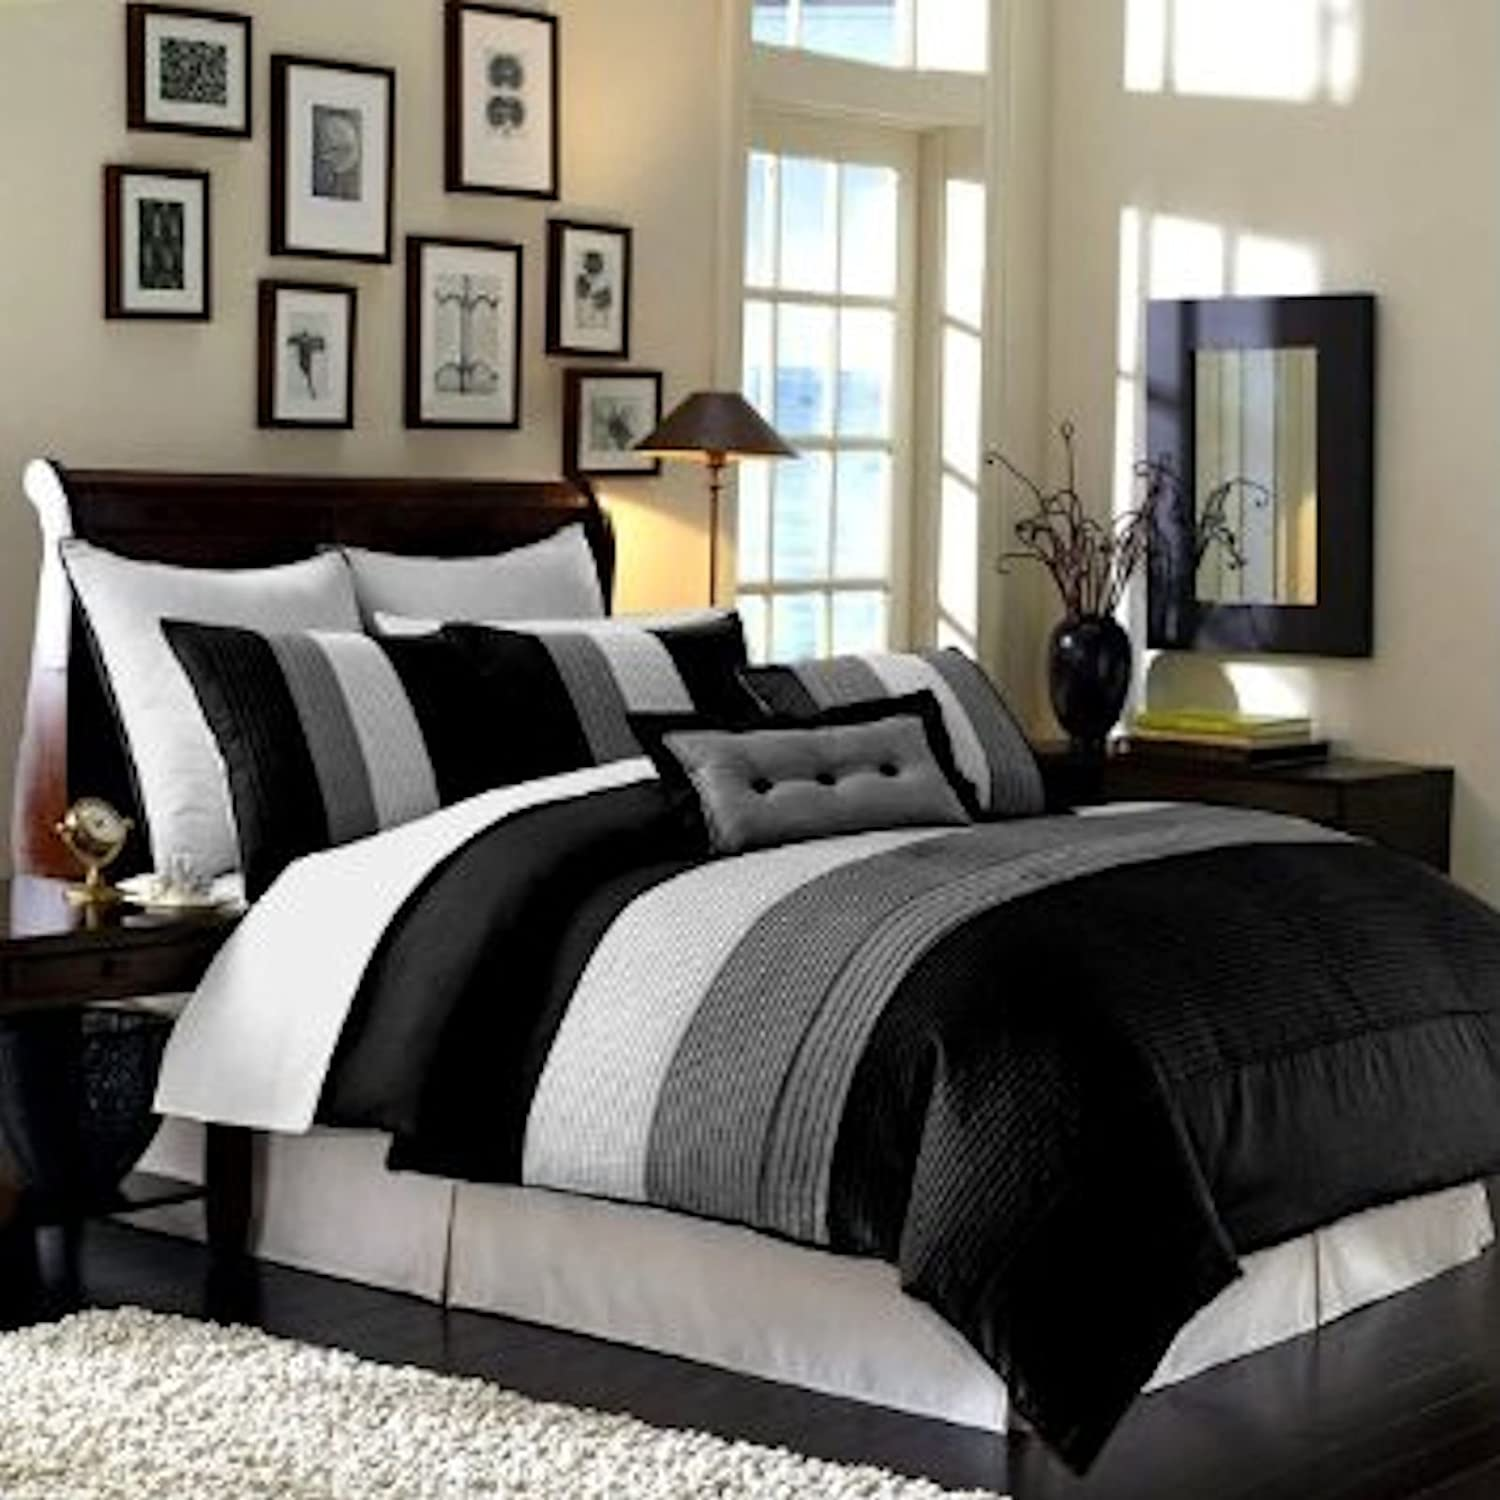 Amazon com legacy decor 8pcs modern black white grey luxury stripe comforter 90x92 set bed in bag queen size bedding home kitchen